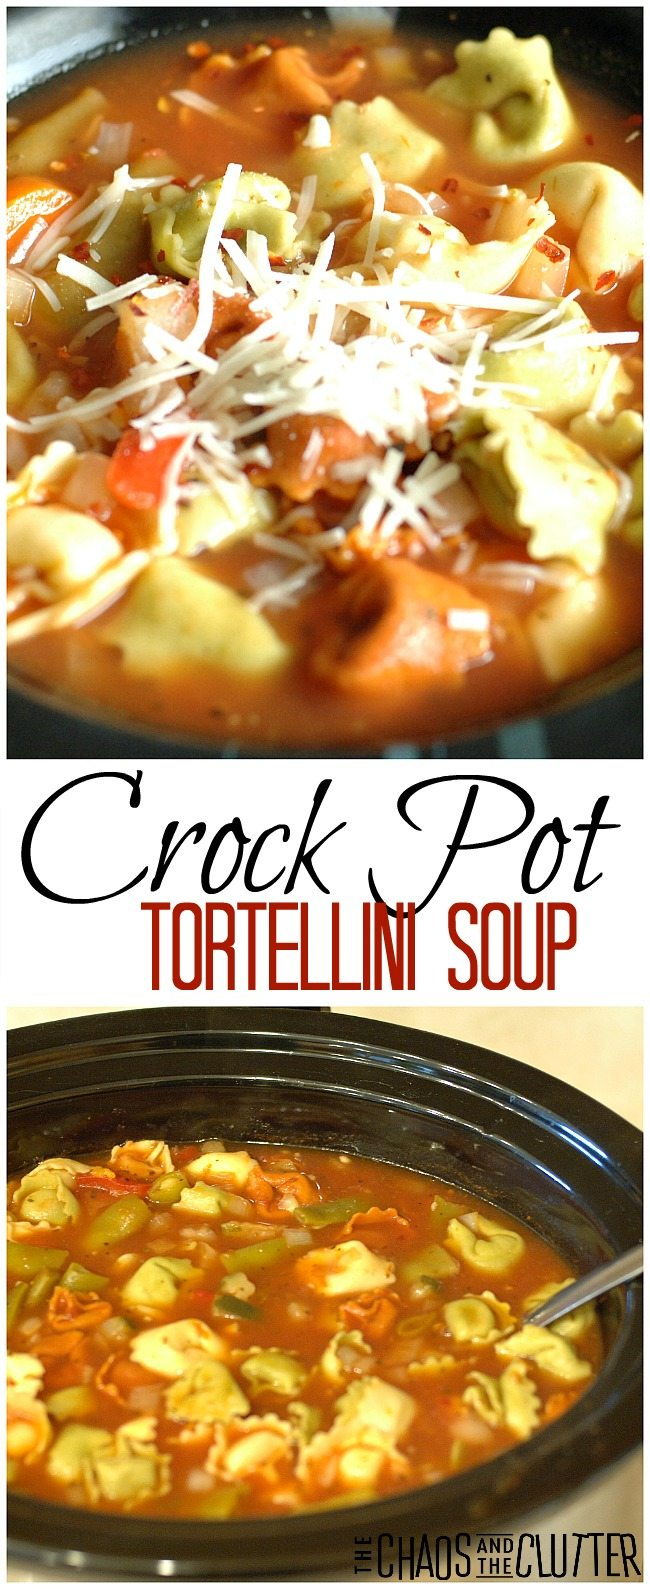 This hearty crock pot tortellini soup can also be made ahead as a freezer meal.